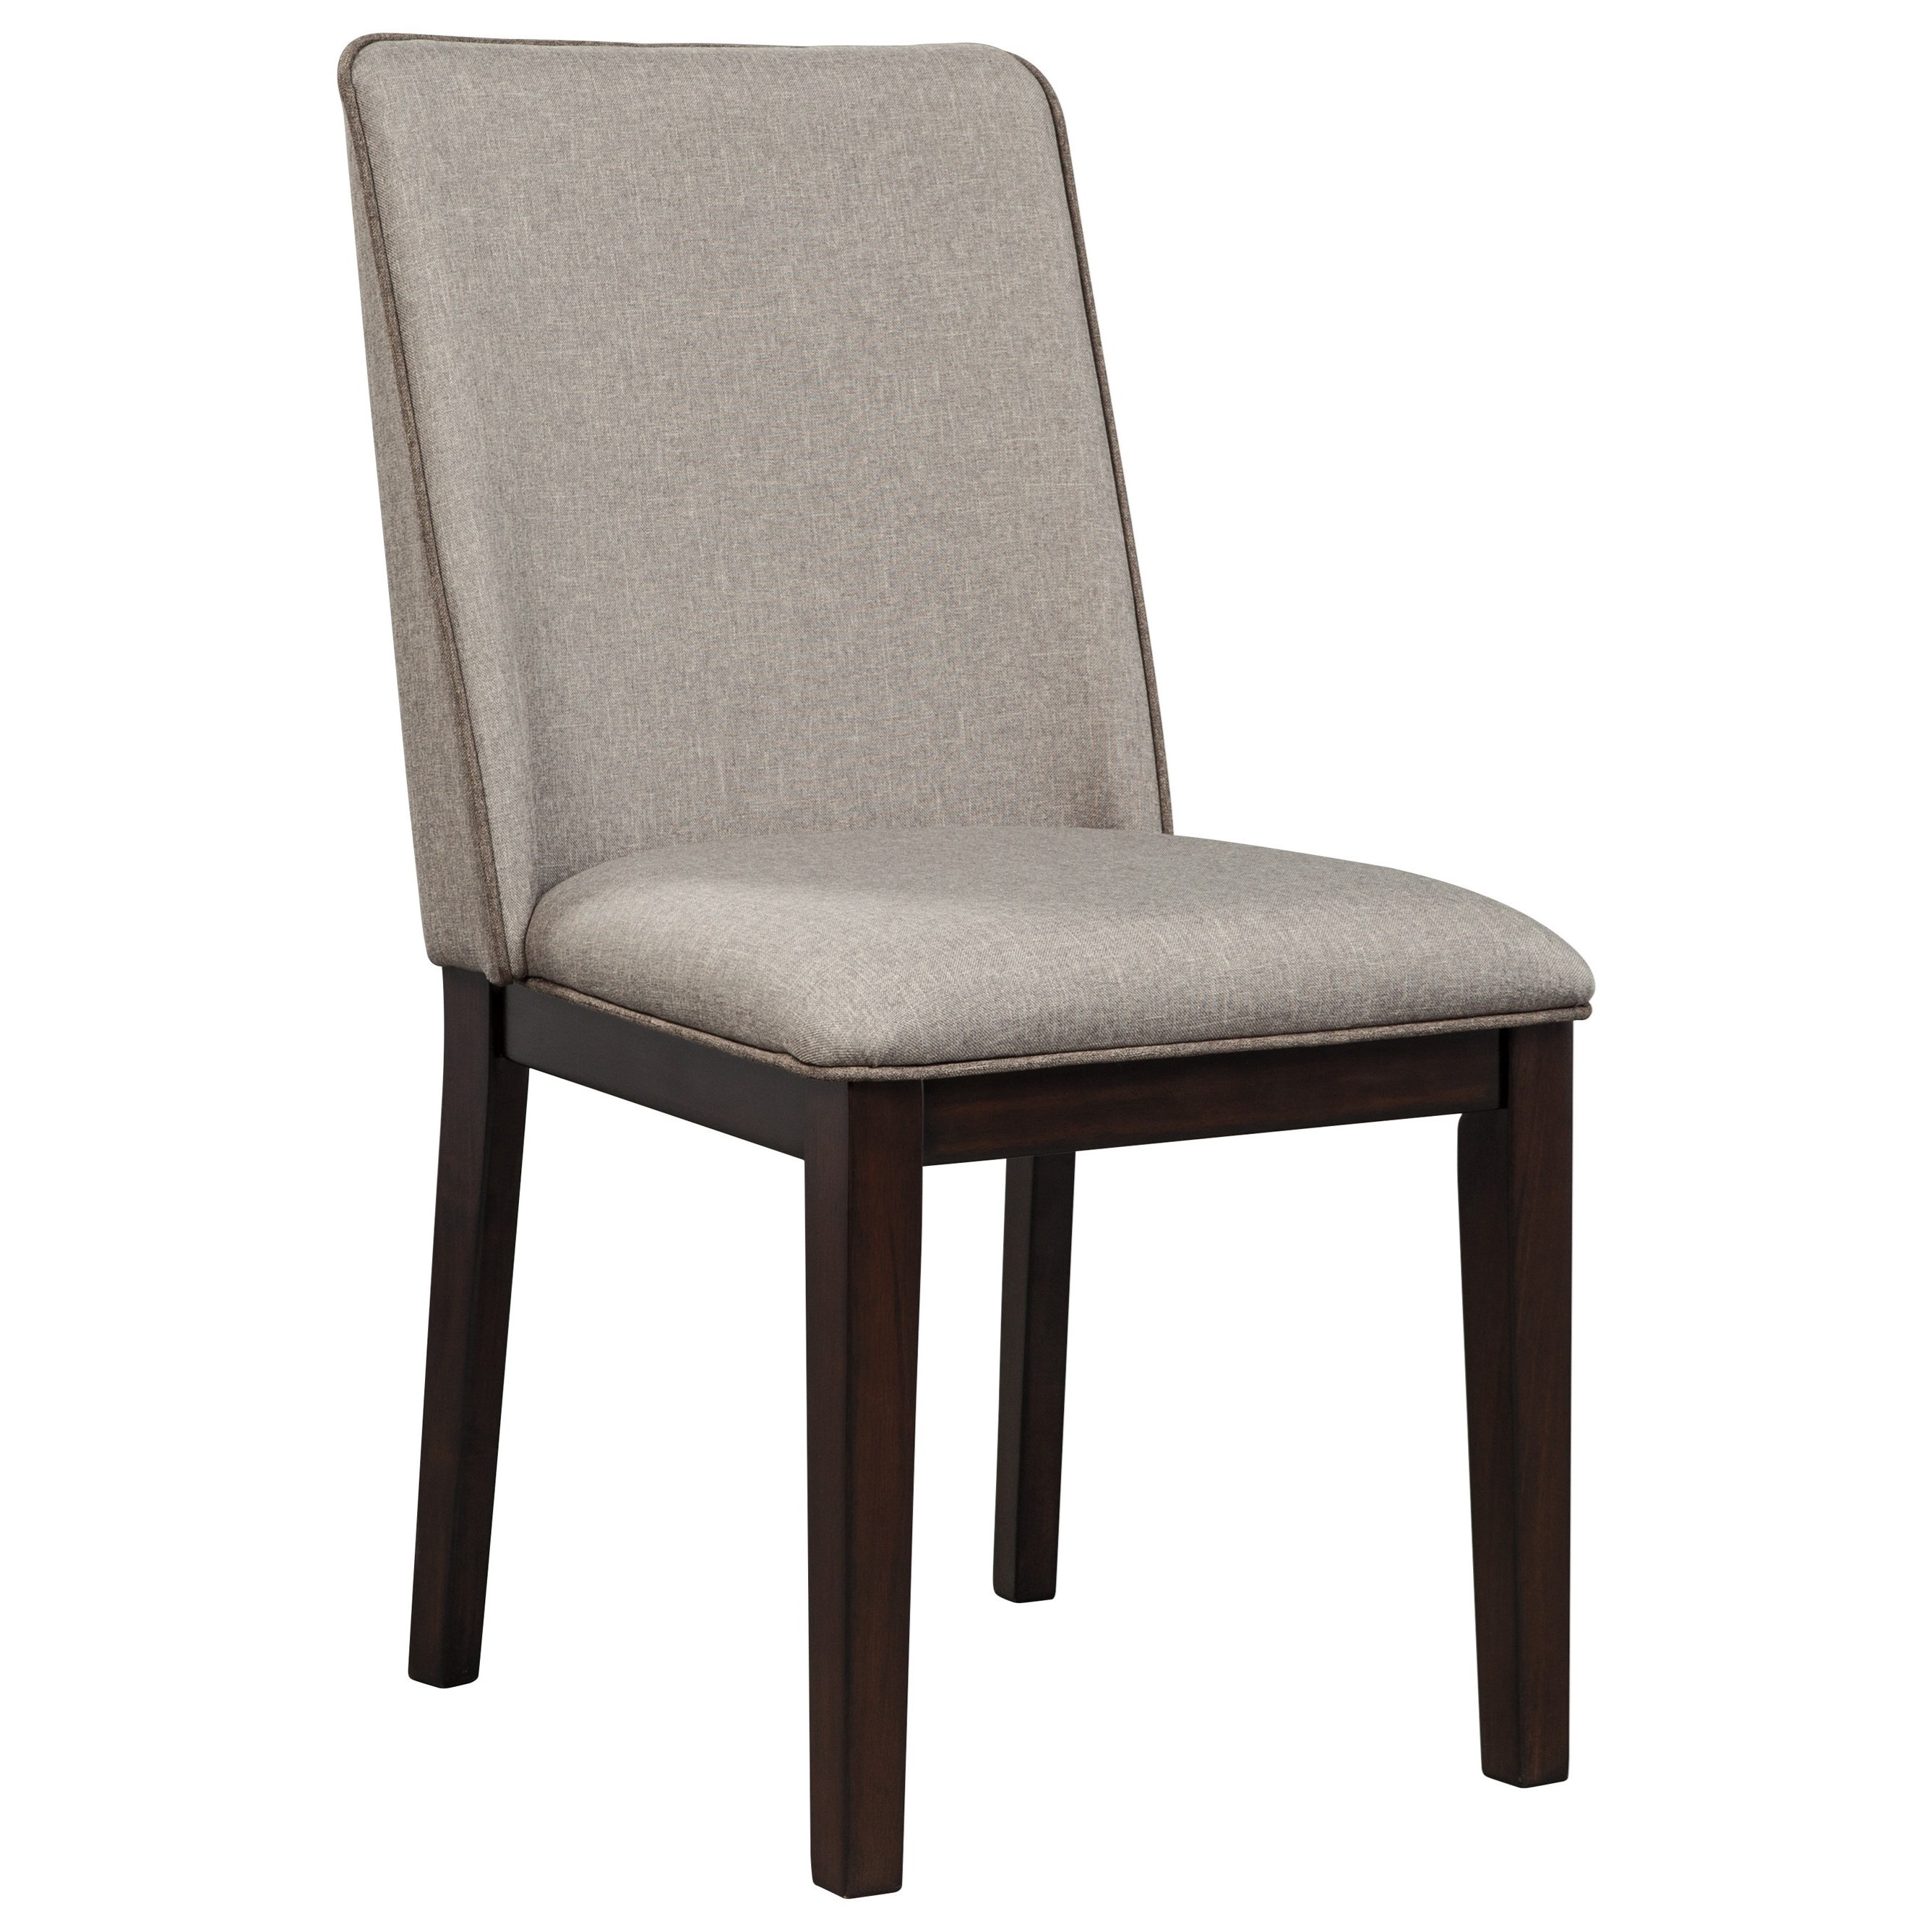 Signature Design by Ashley Chanceen Dining Upholstered Side Chair - Item Number: D387-01